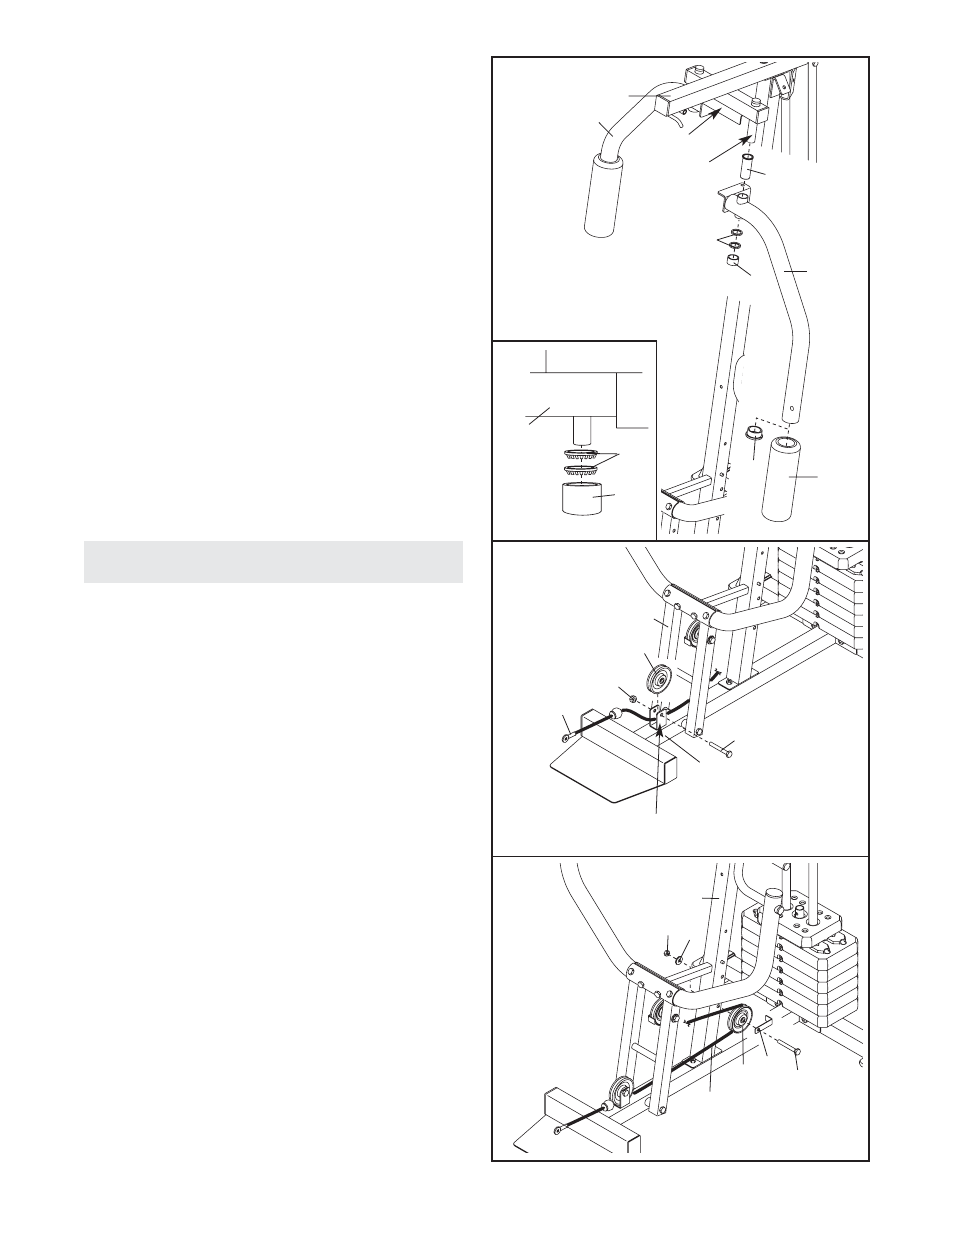 cable assembly weider pro 2250 user manual page 8 24 rh manualsdir com Crosman 2250 Nokia 2250